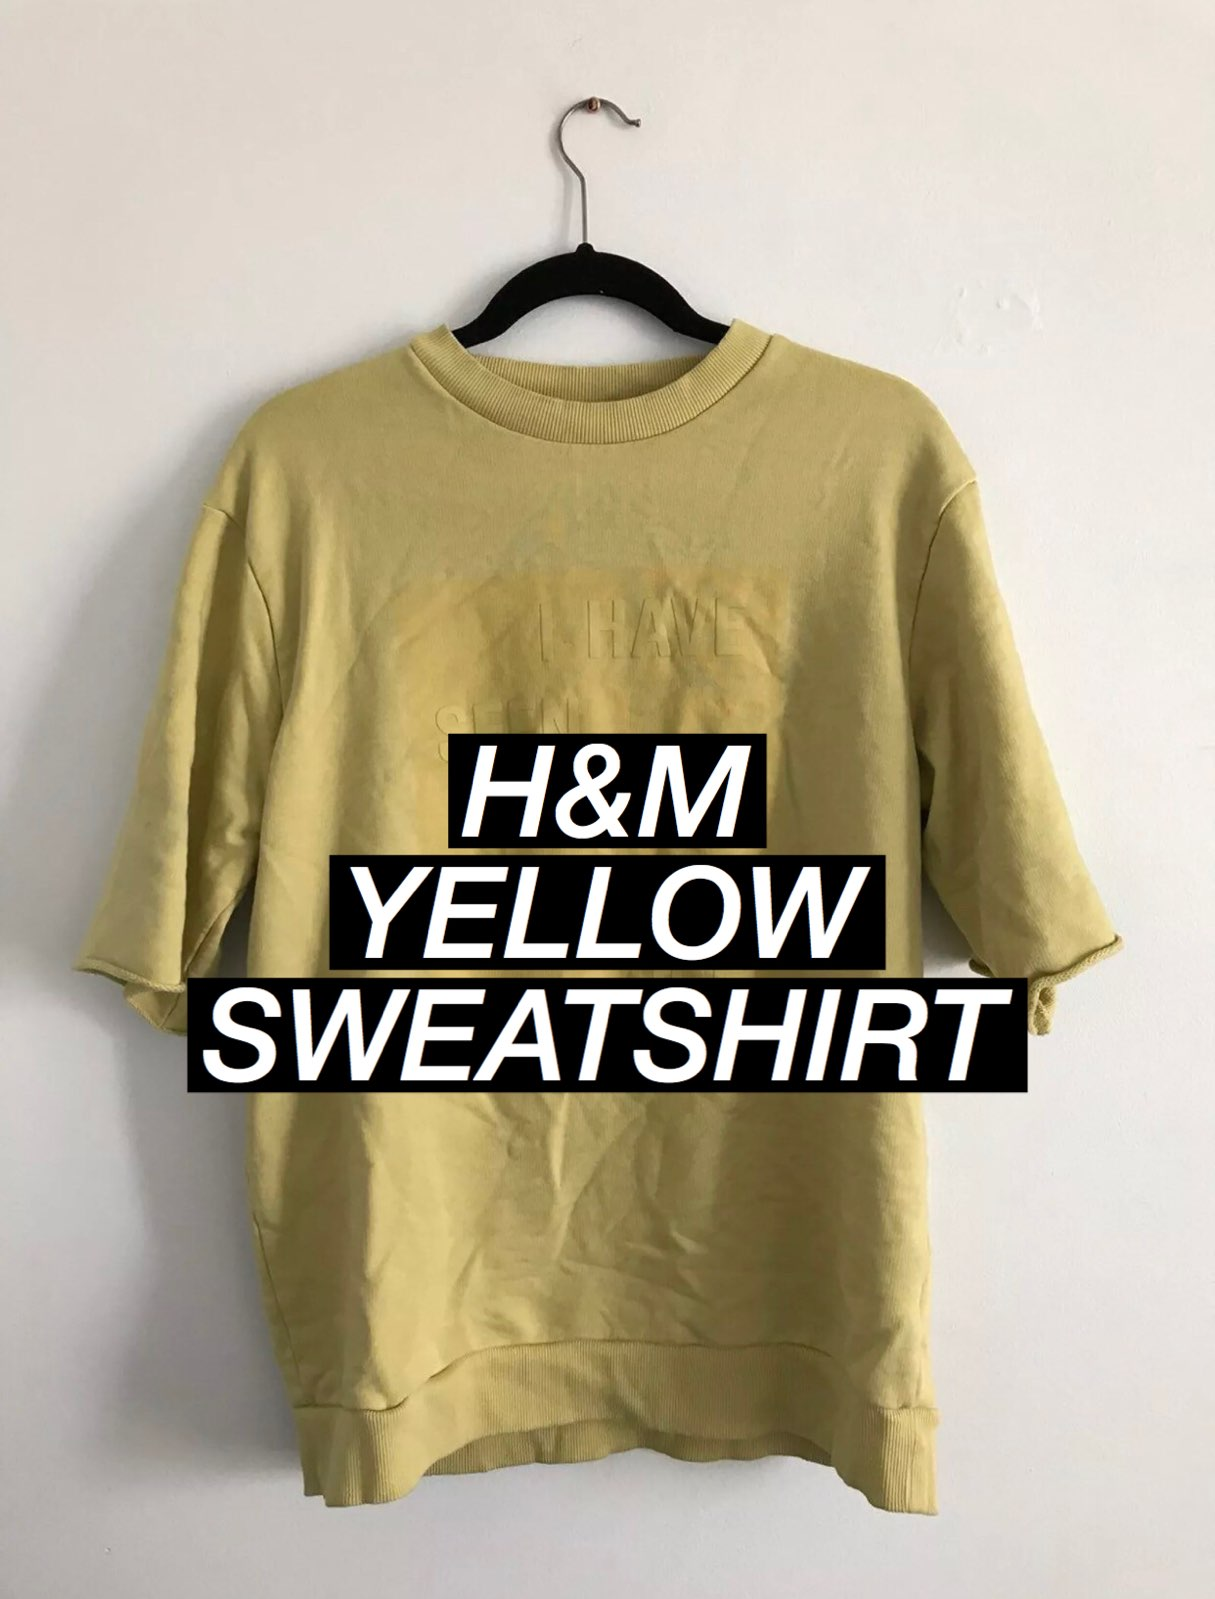 H&M Men Yellow Short Sleeve Sweater - Mercari: BUY & SELL THINGS ...